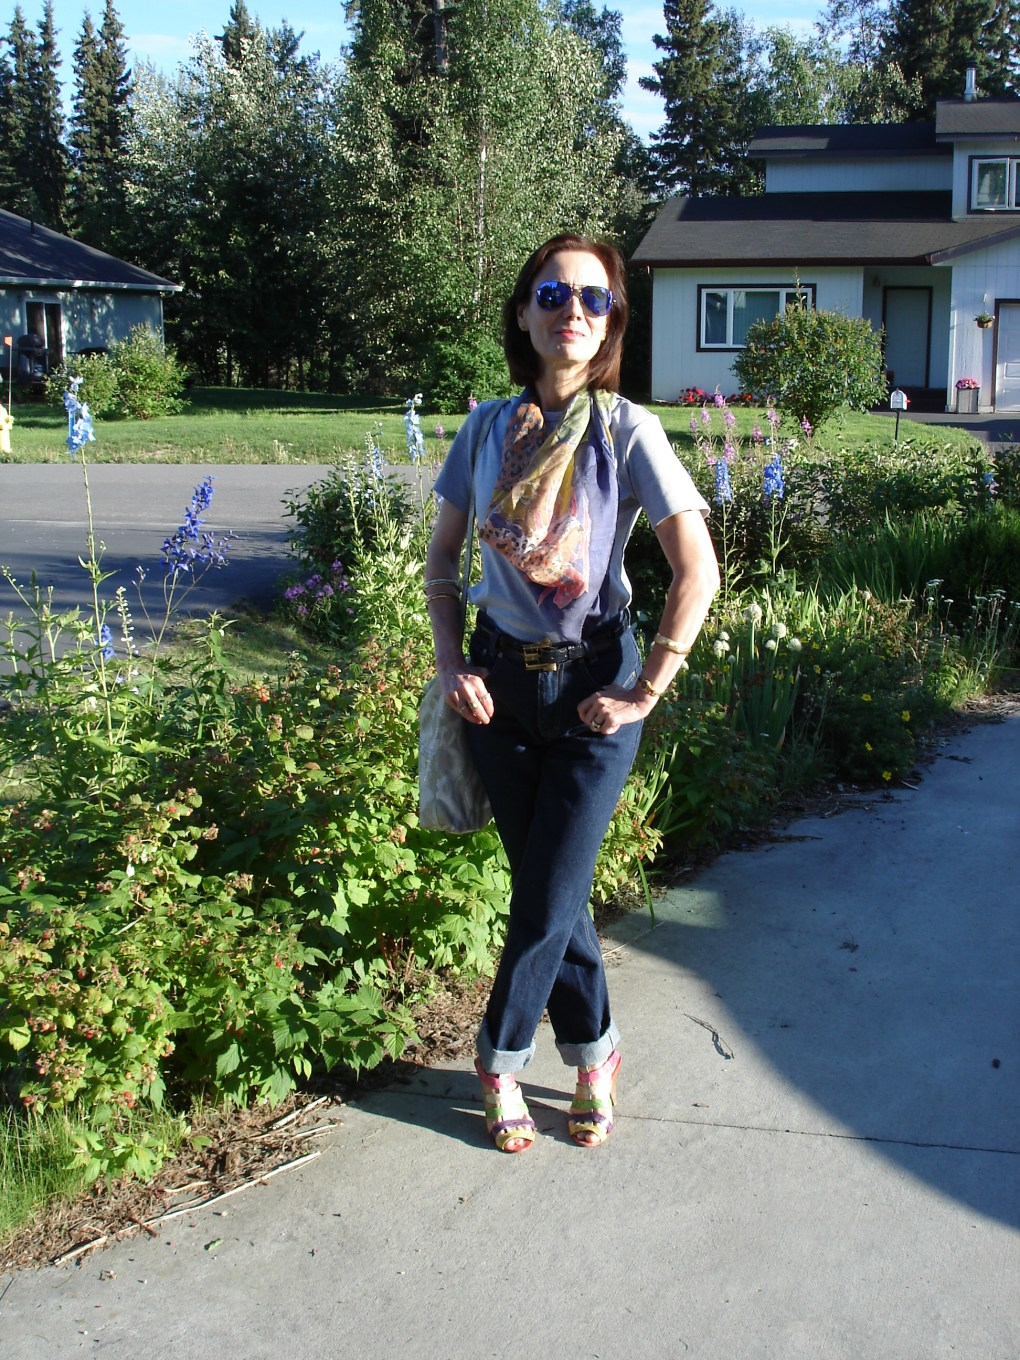 #styleover50 cute up-dress of jeans and tee for picnic | High Latitude Style | http://wp.me/p3FTnC-3f8